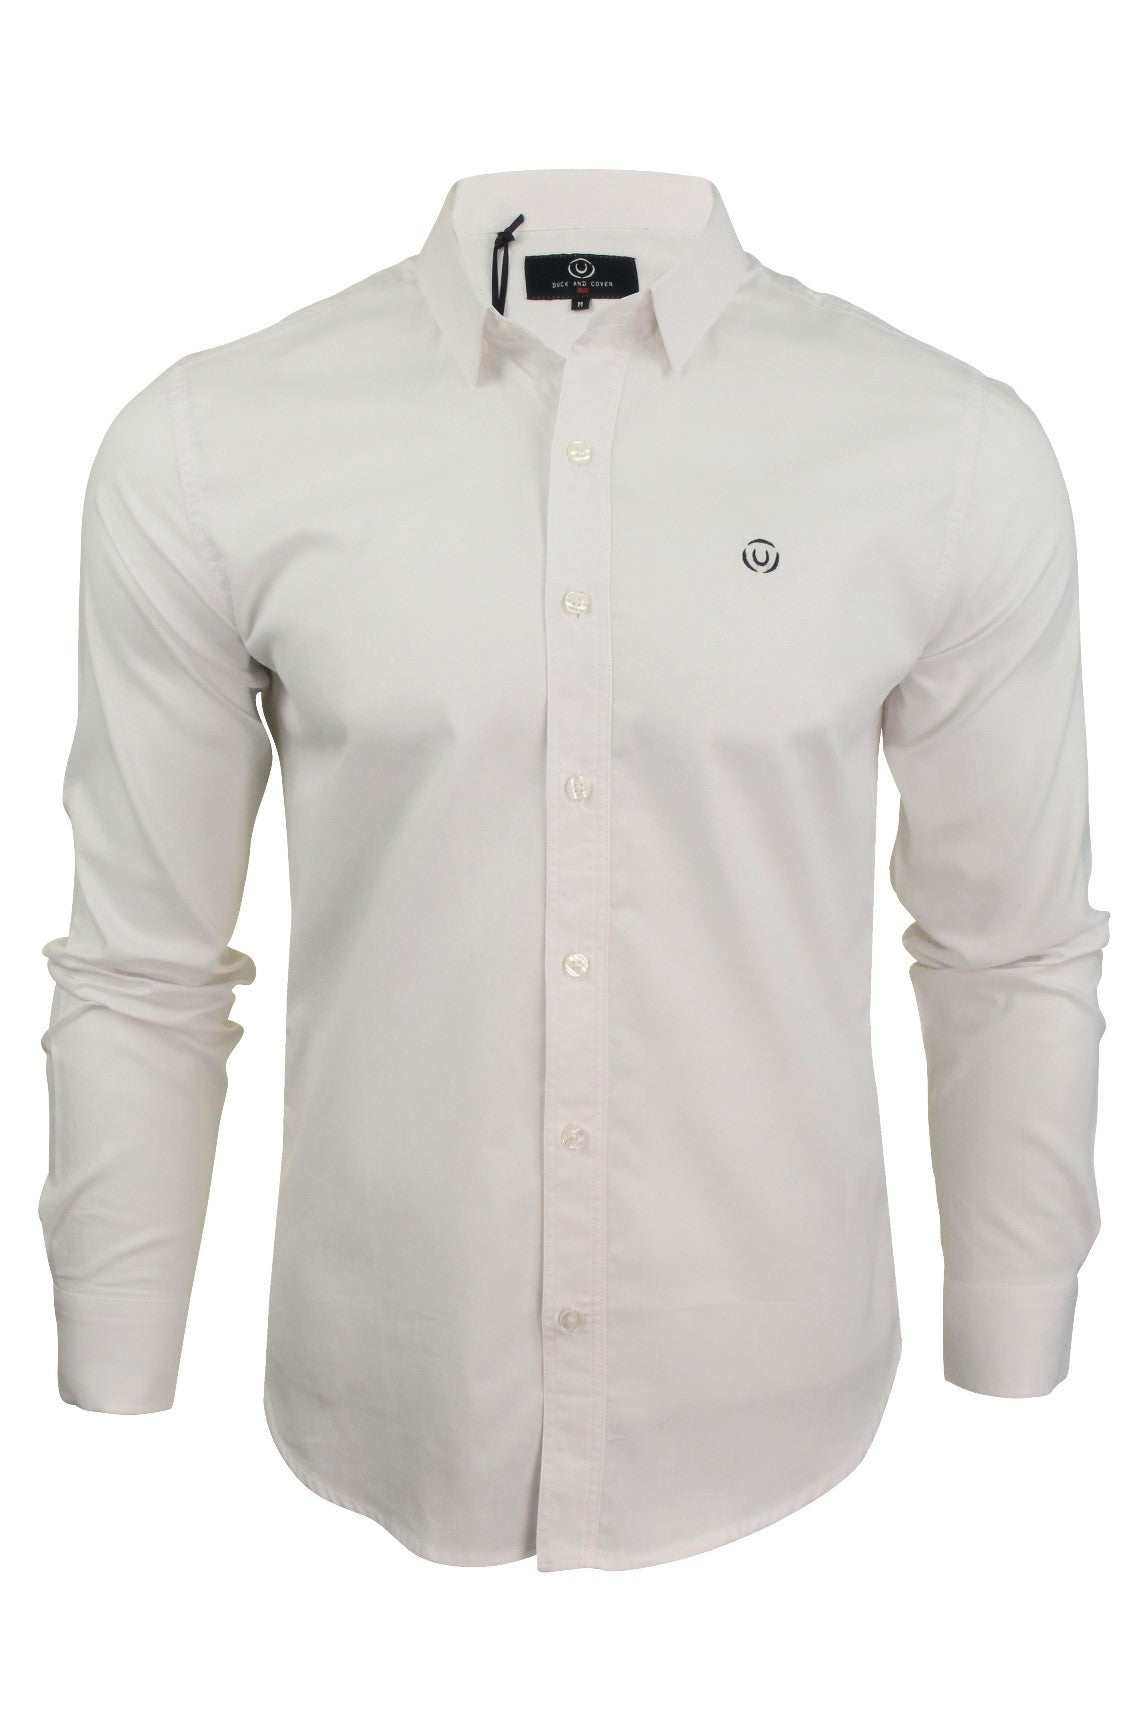 Mens Long Sleeved Shirt by Duck and Cover 'Birch'_01_Dc2G111535_White